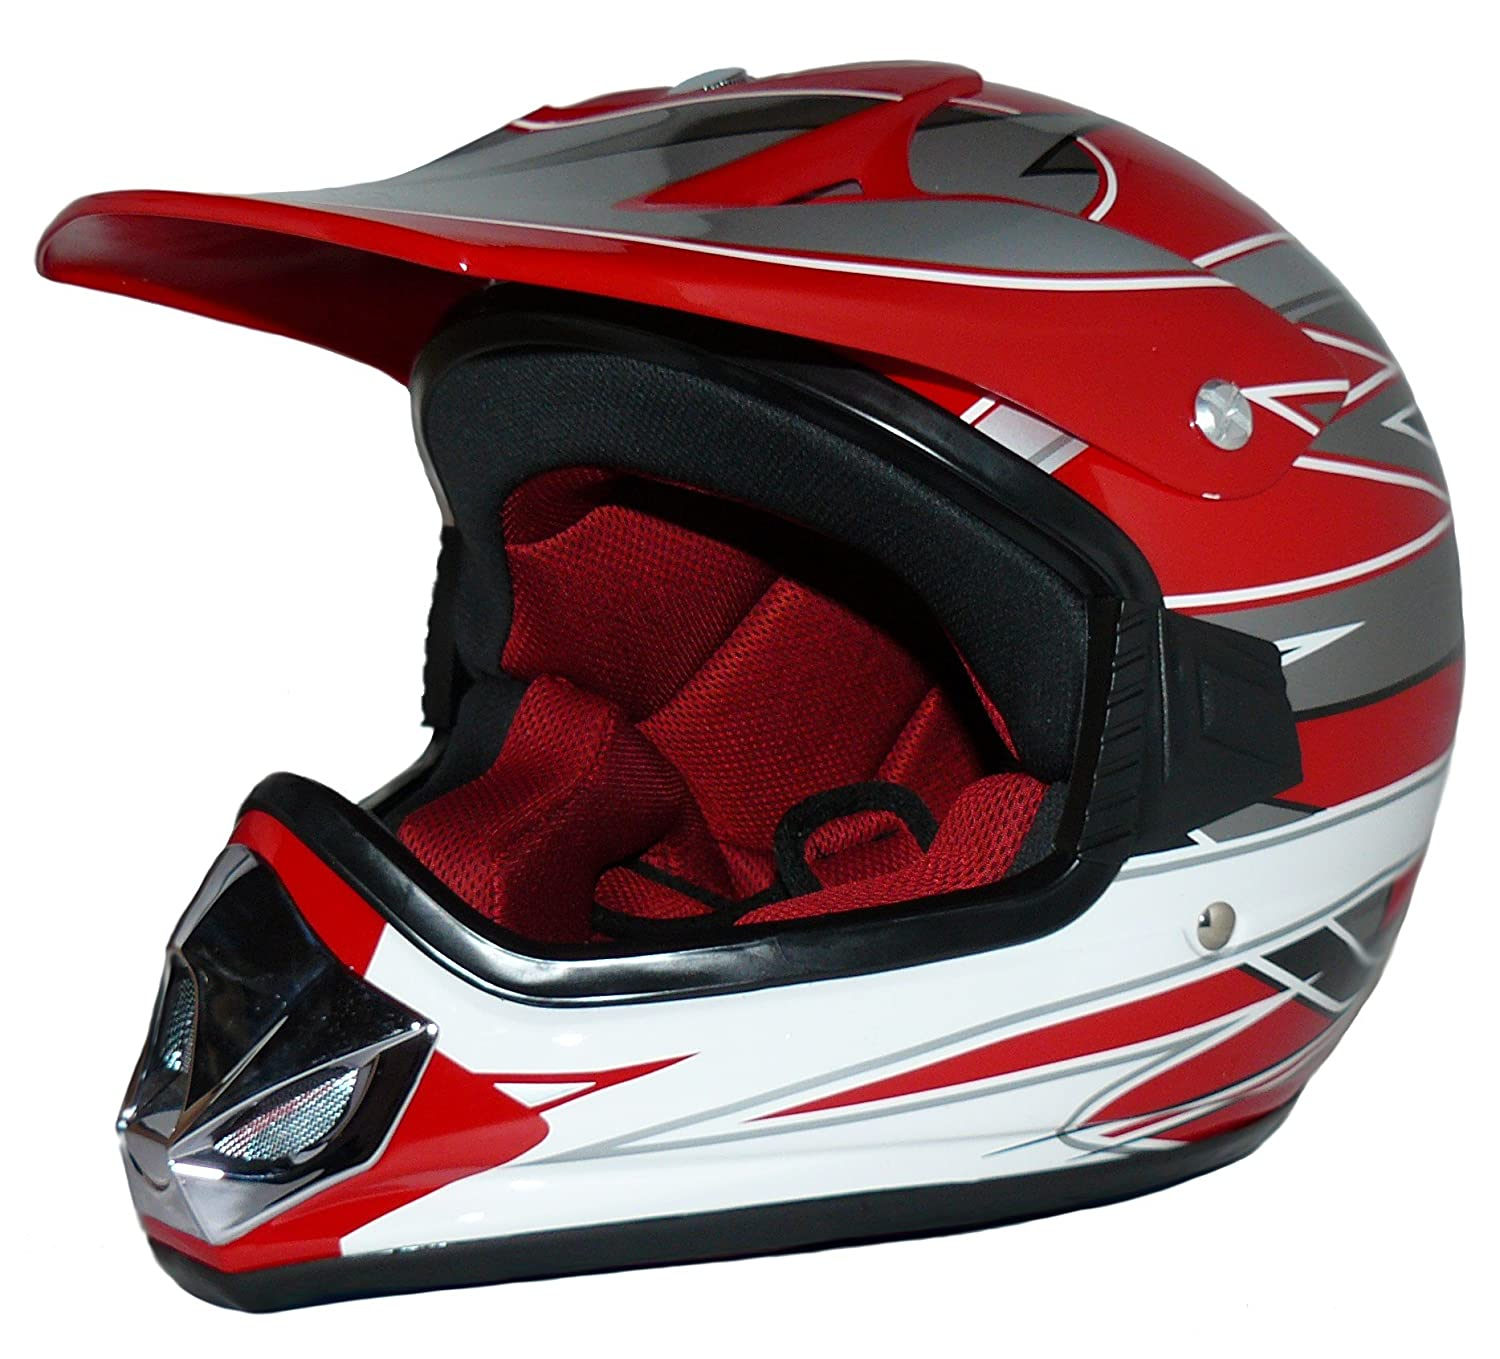 Protectwear Kids Cross Helmet MaX Racing red gloss V310-RT Size XS Youth L 53//54 cm